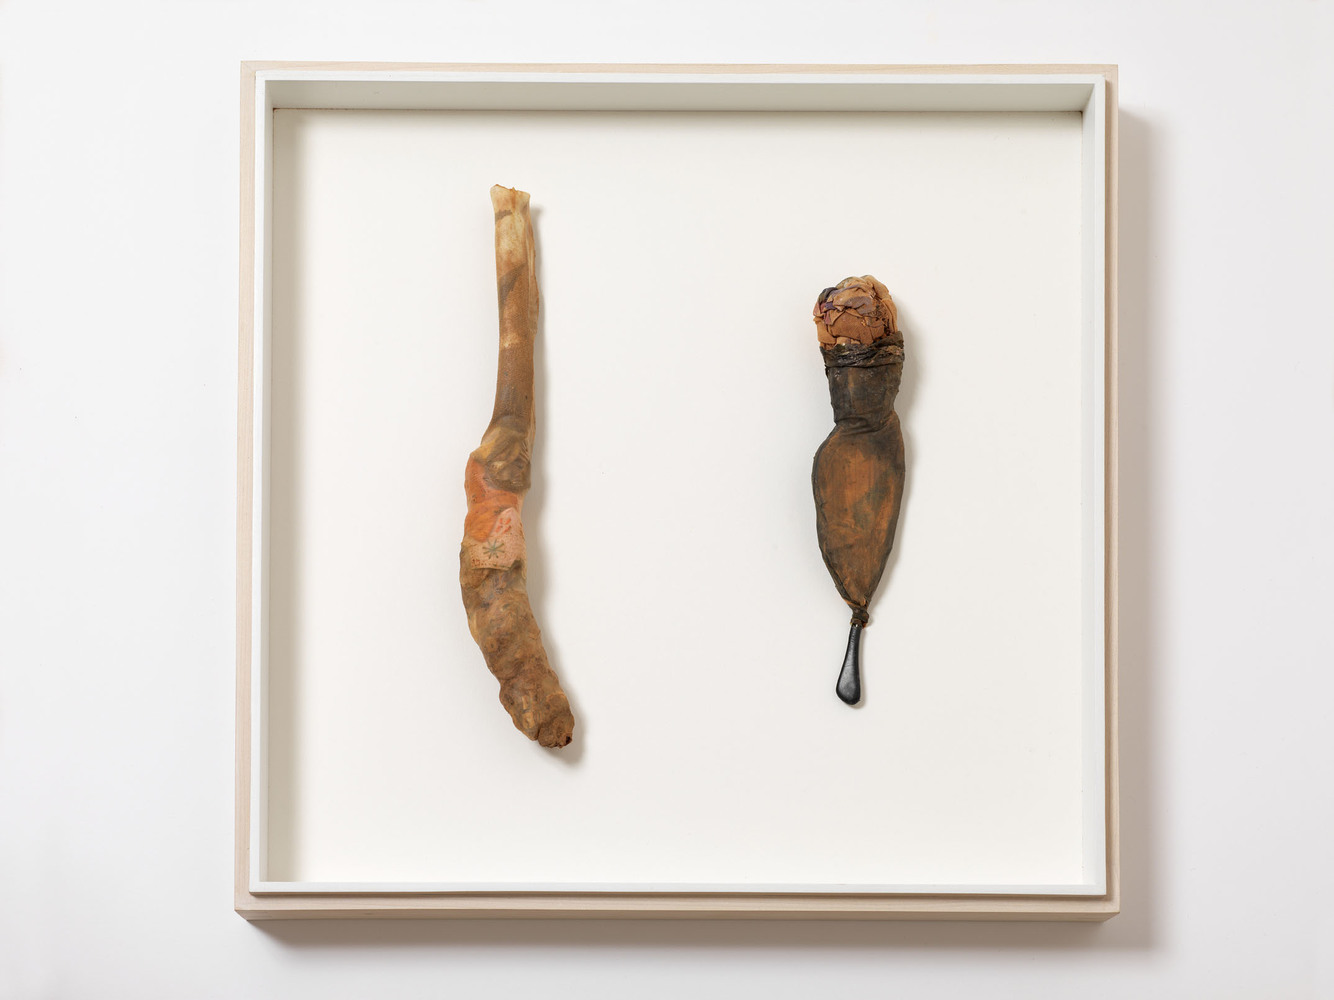 Nicola Ginzel  ARTWORK  overview entrails, dirt, eye glass part, clothing remnants, panty hose